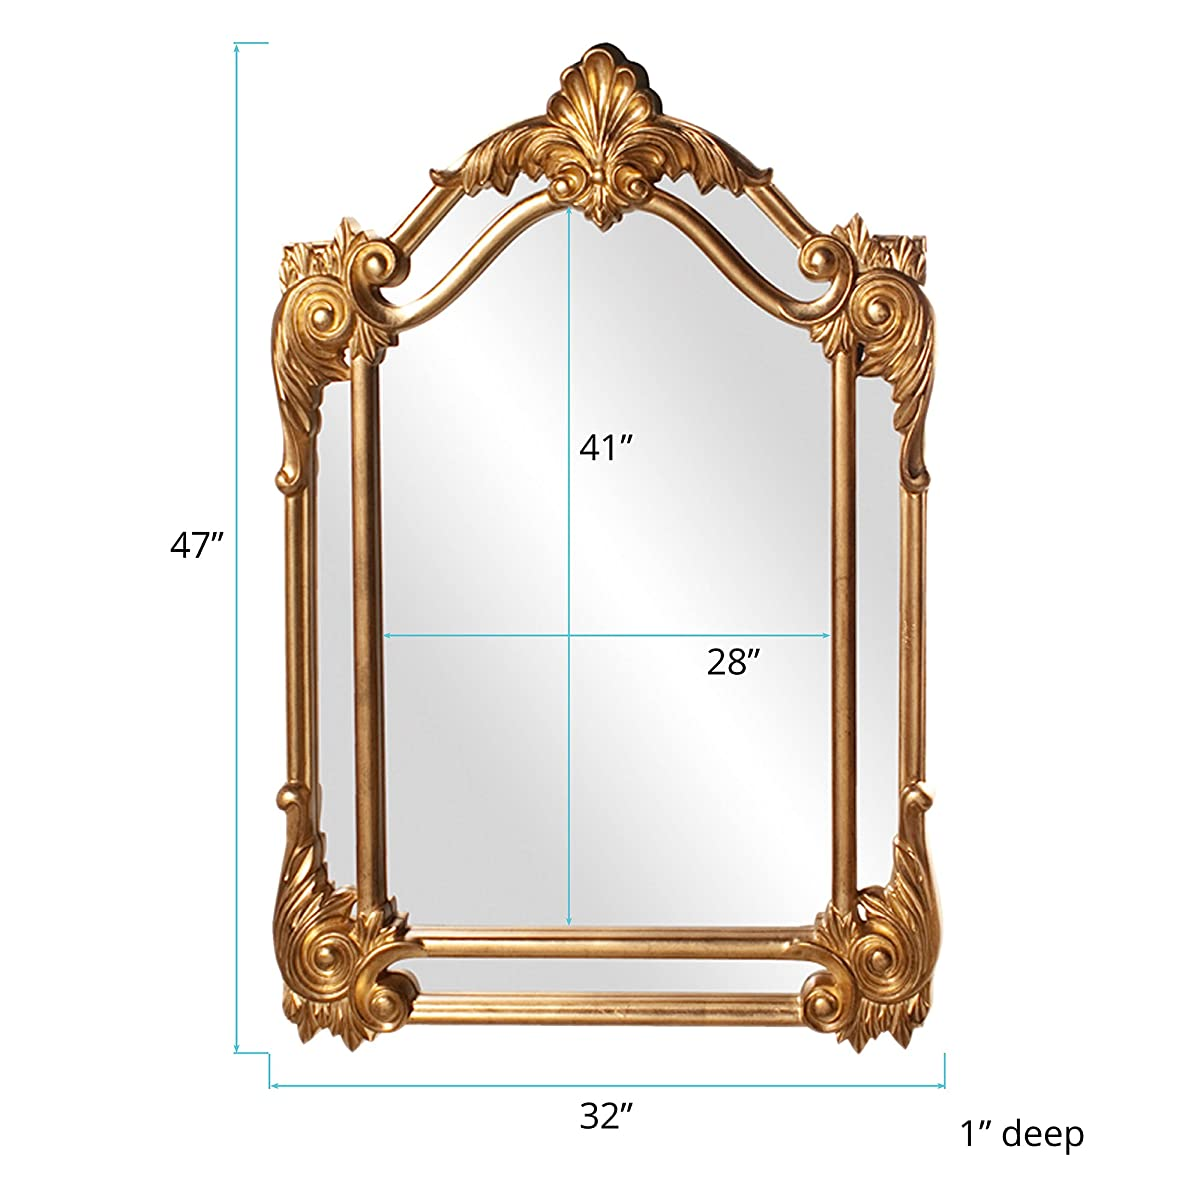 Howard Elliott 56004 Cortland Rectangular Mirror, 32 x 47-Inch, Antique Gold Leaf